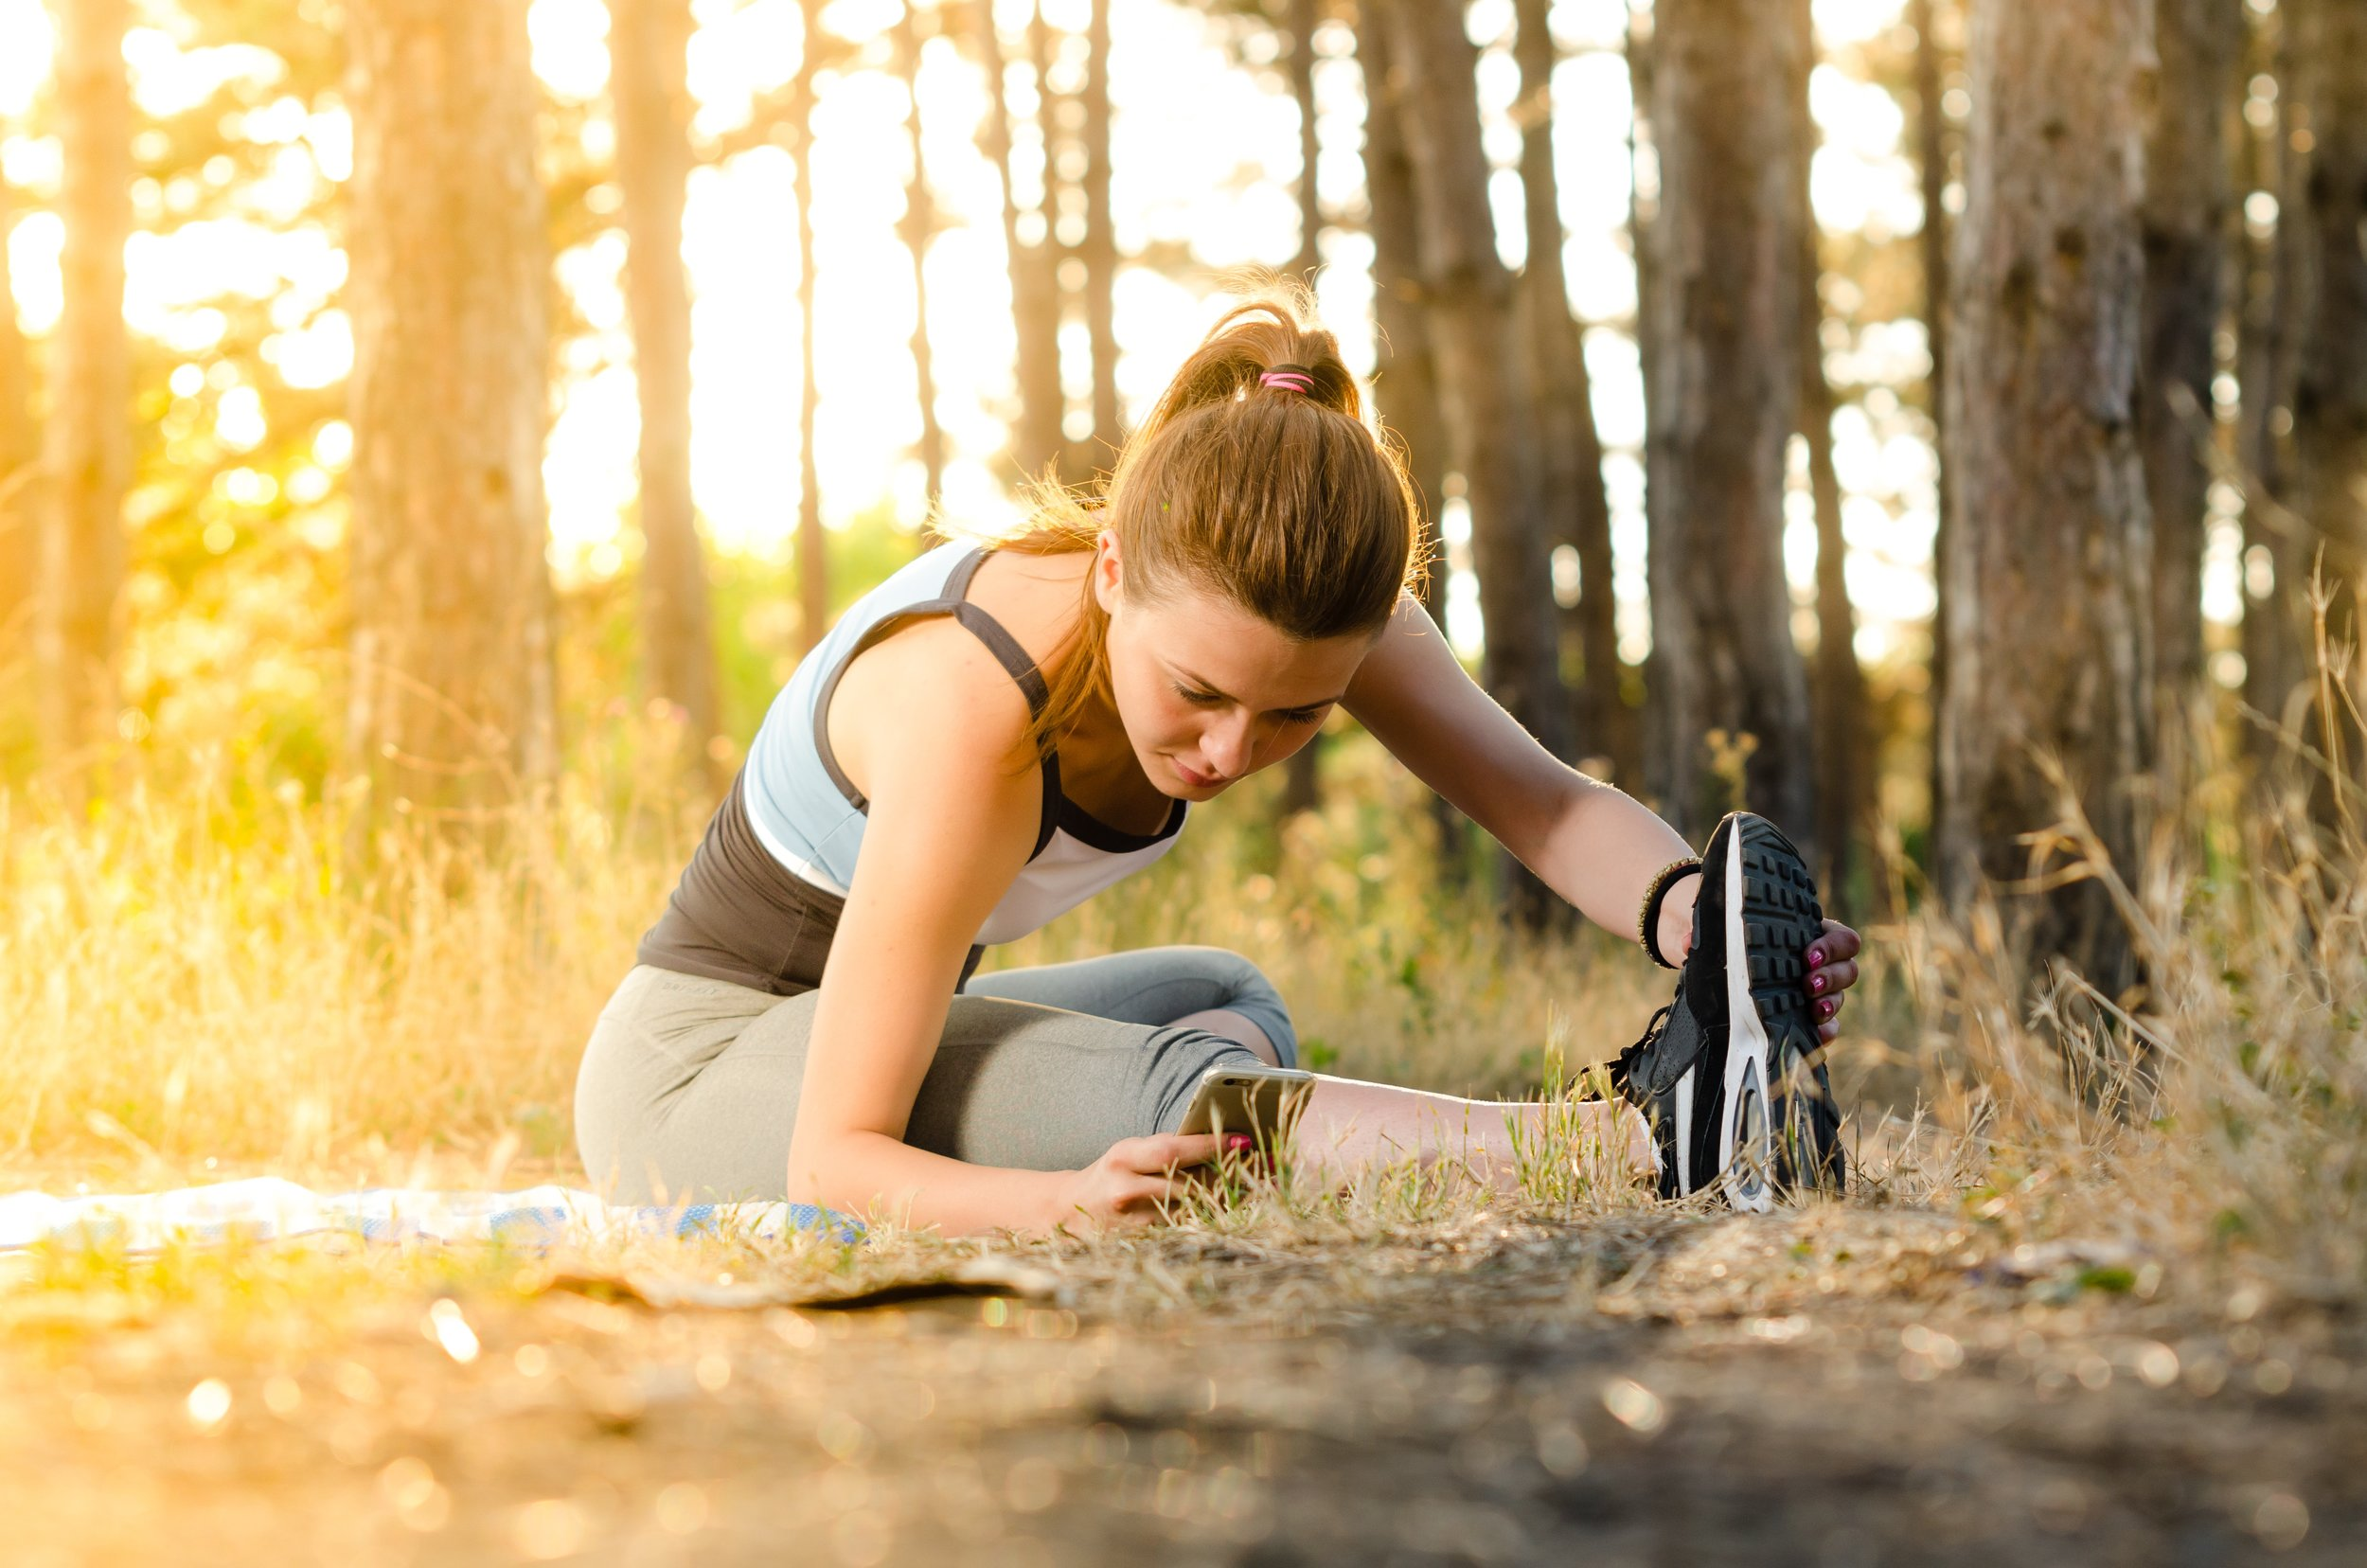 stretching to show exercise myths help people be healthier.jpg